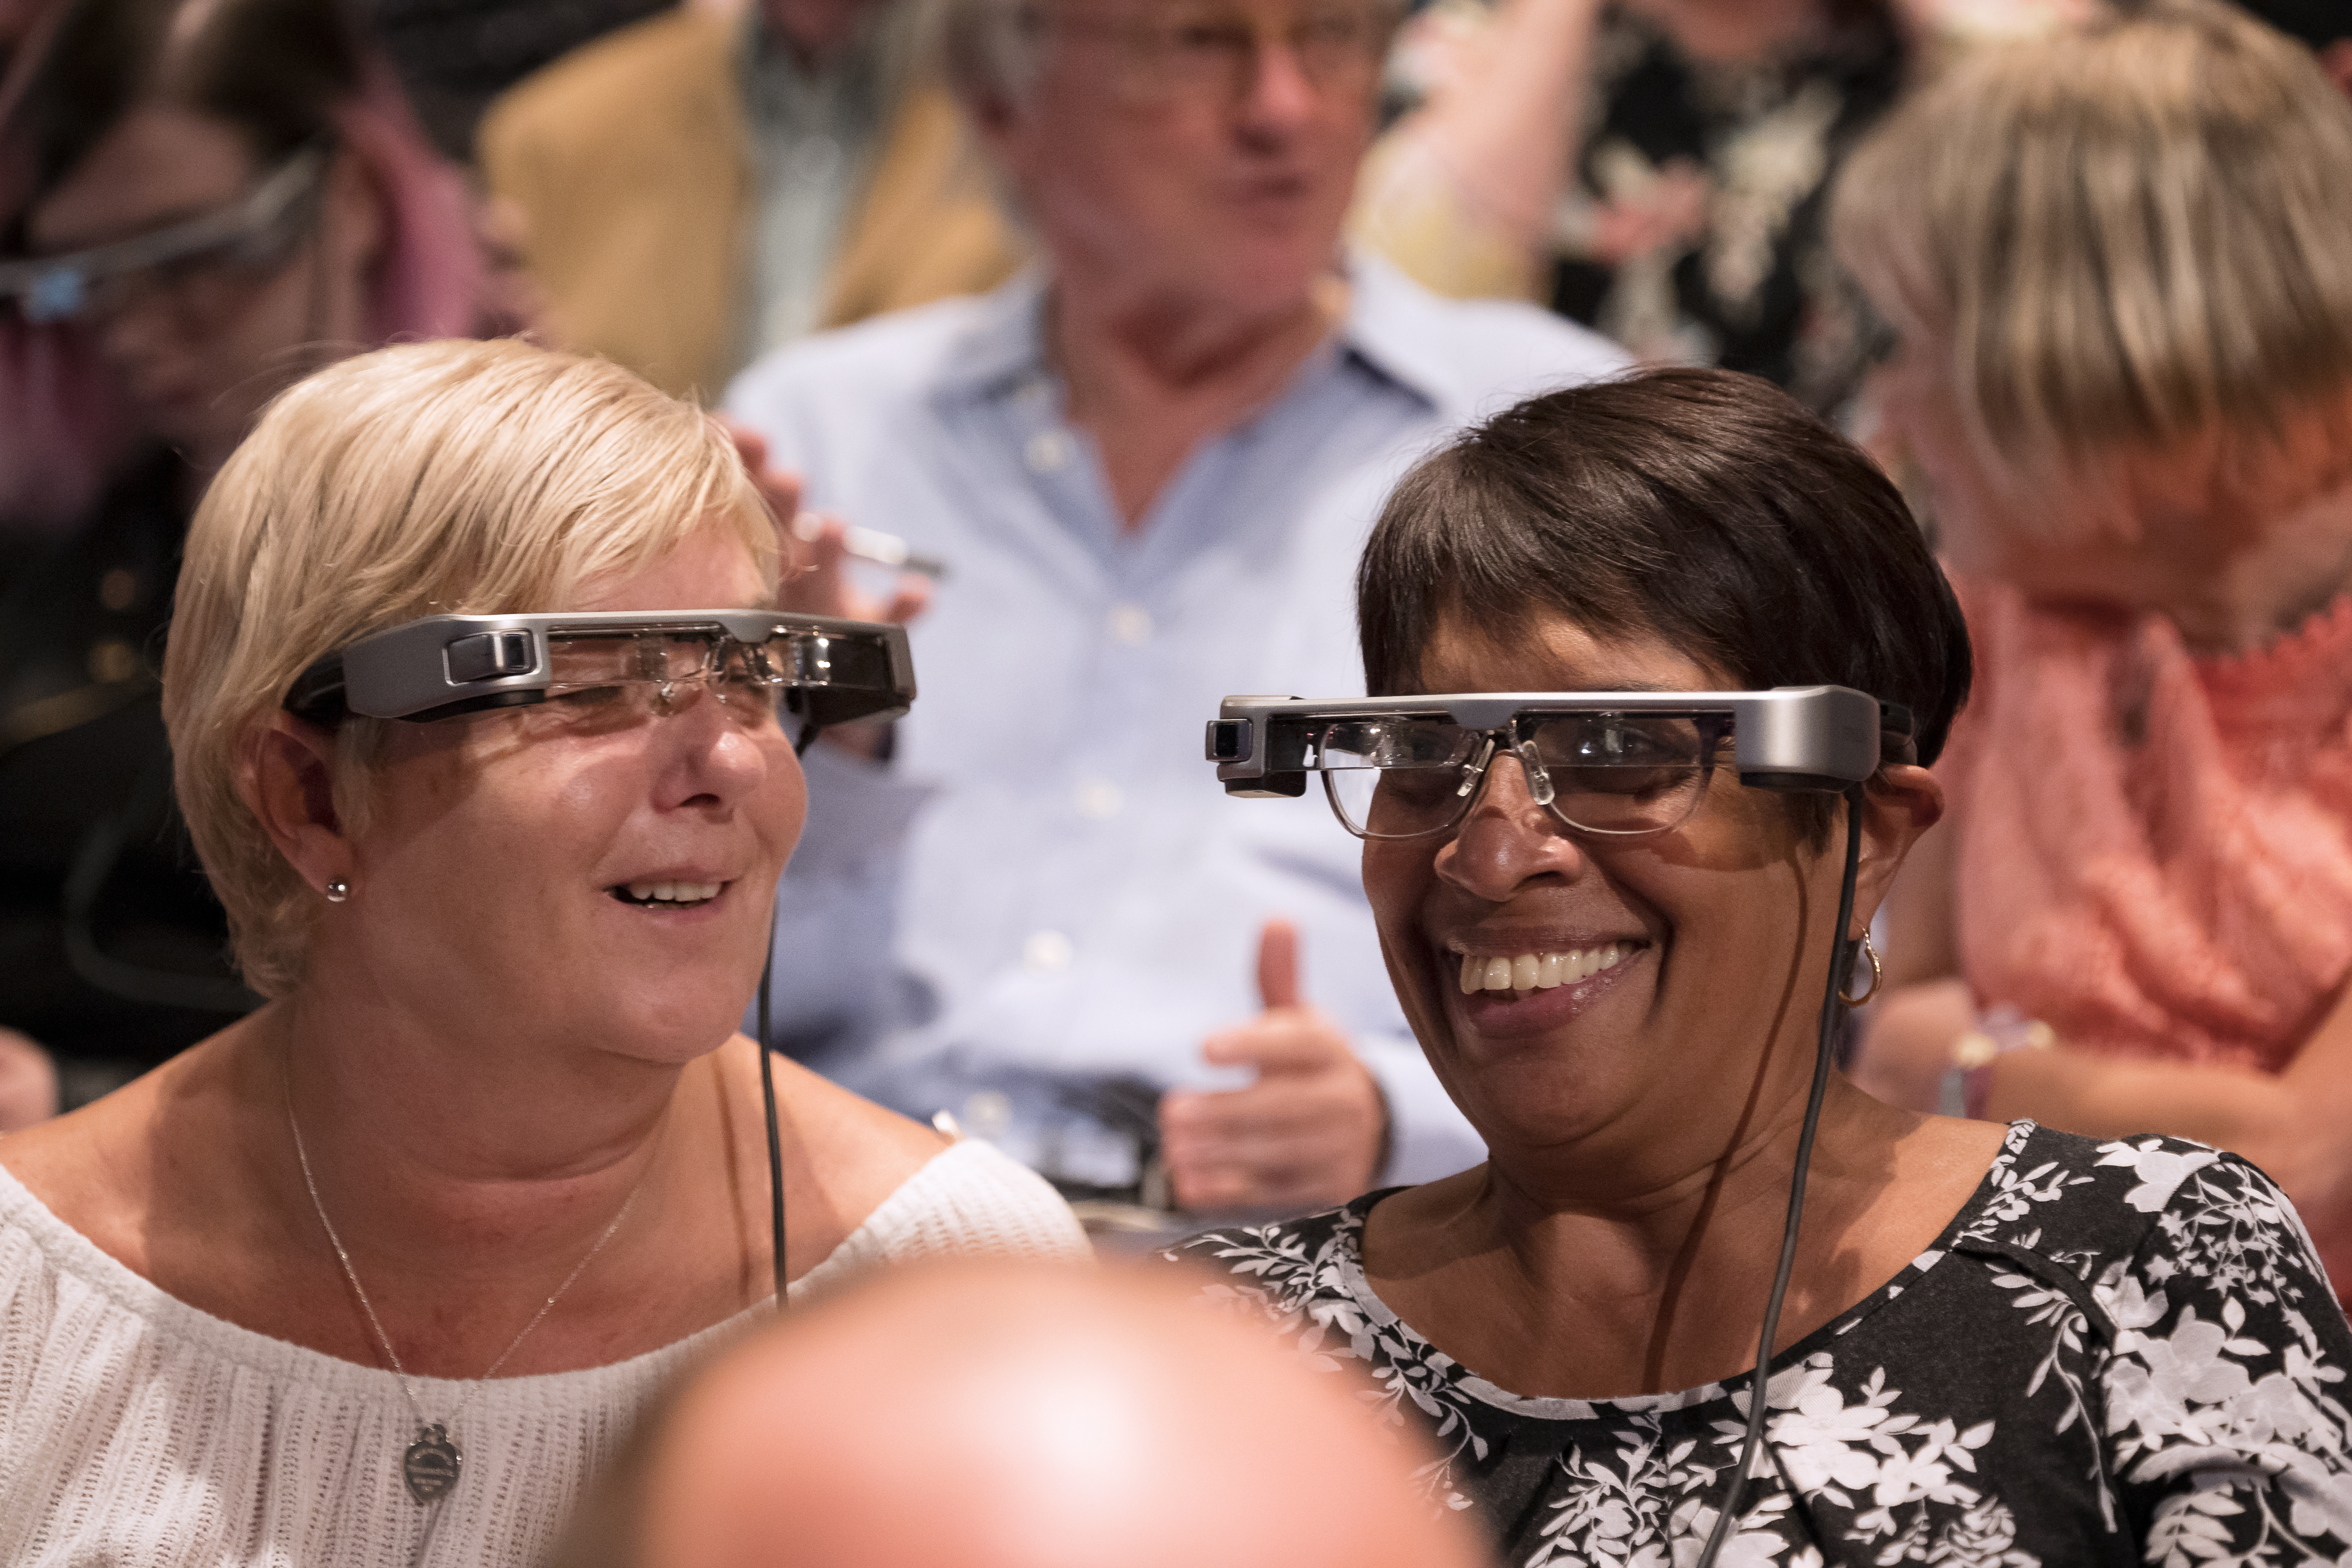 Ground-breaking smart caption glasses developed by the National Theatre and Leeds Beckett University Professor to be trialled at Leeds Playhouse